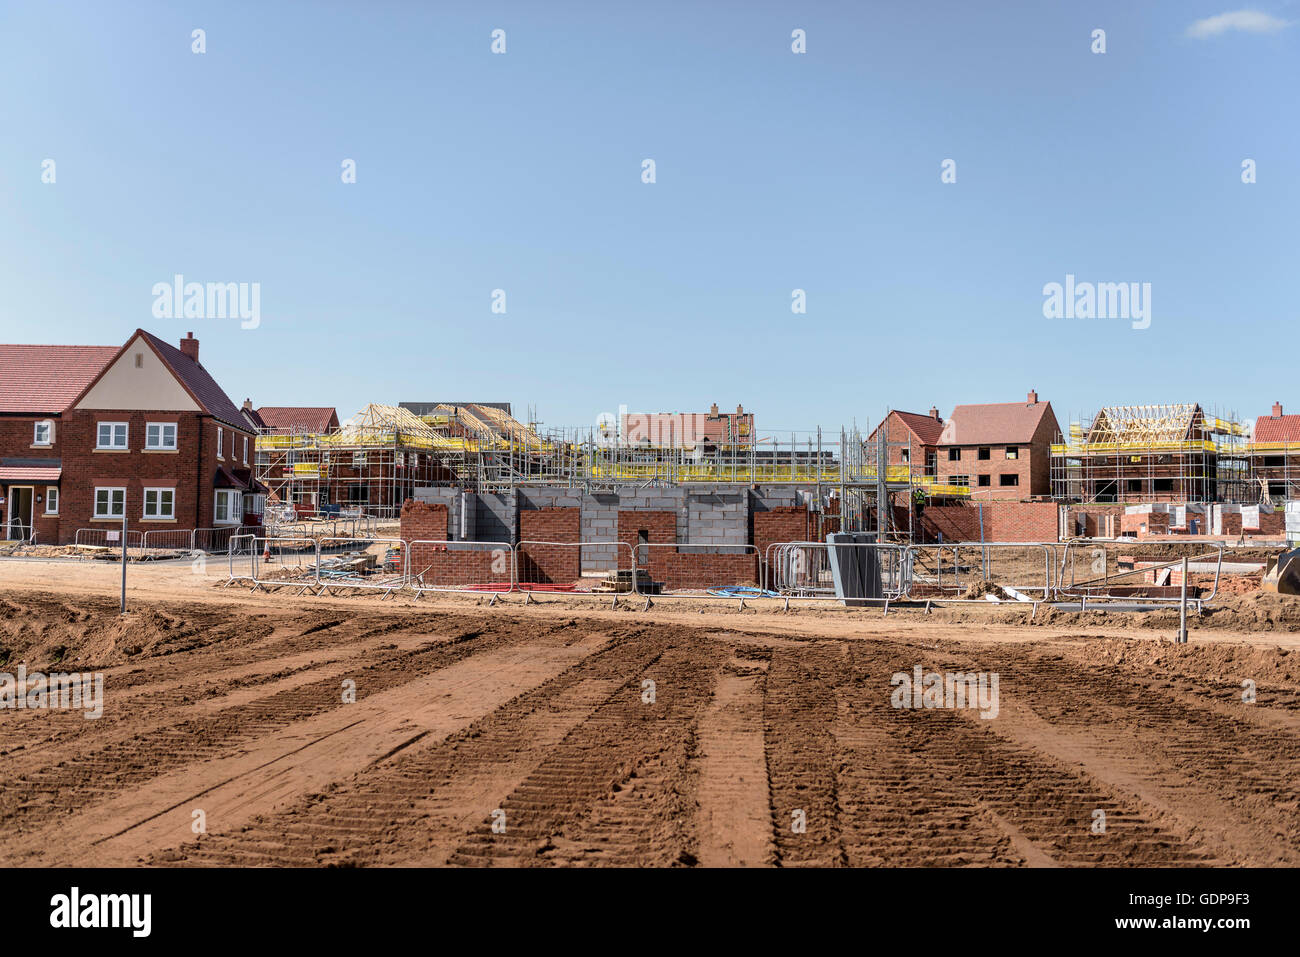 View of housing development on building site - Stock Image